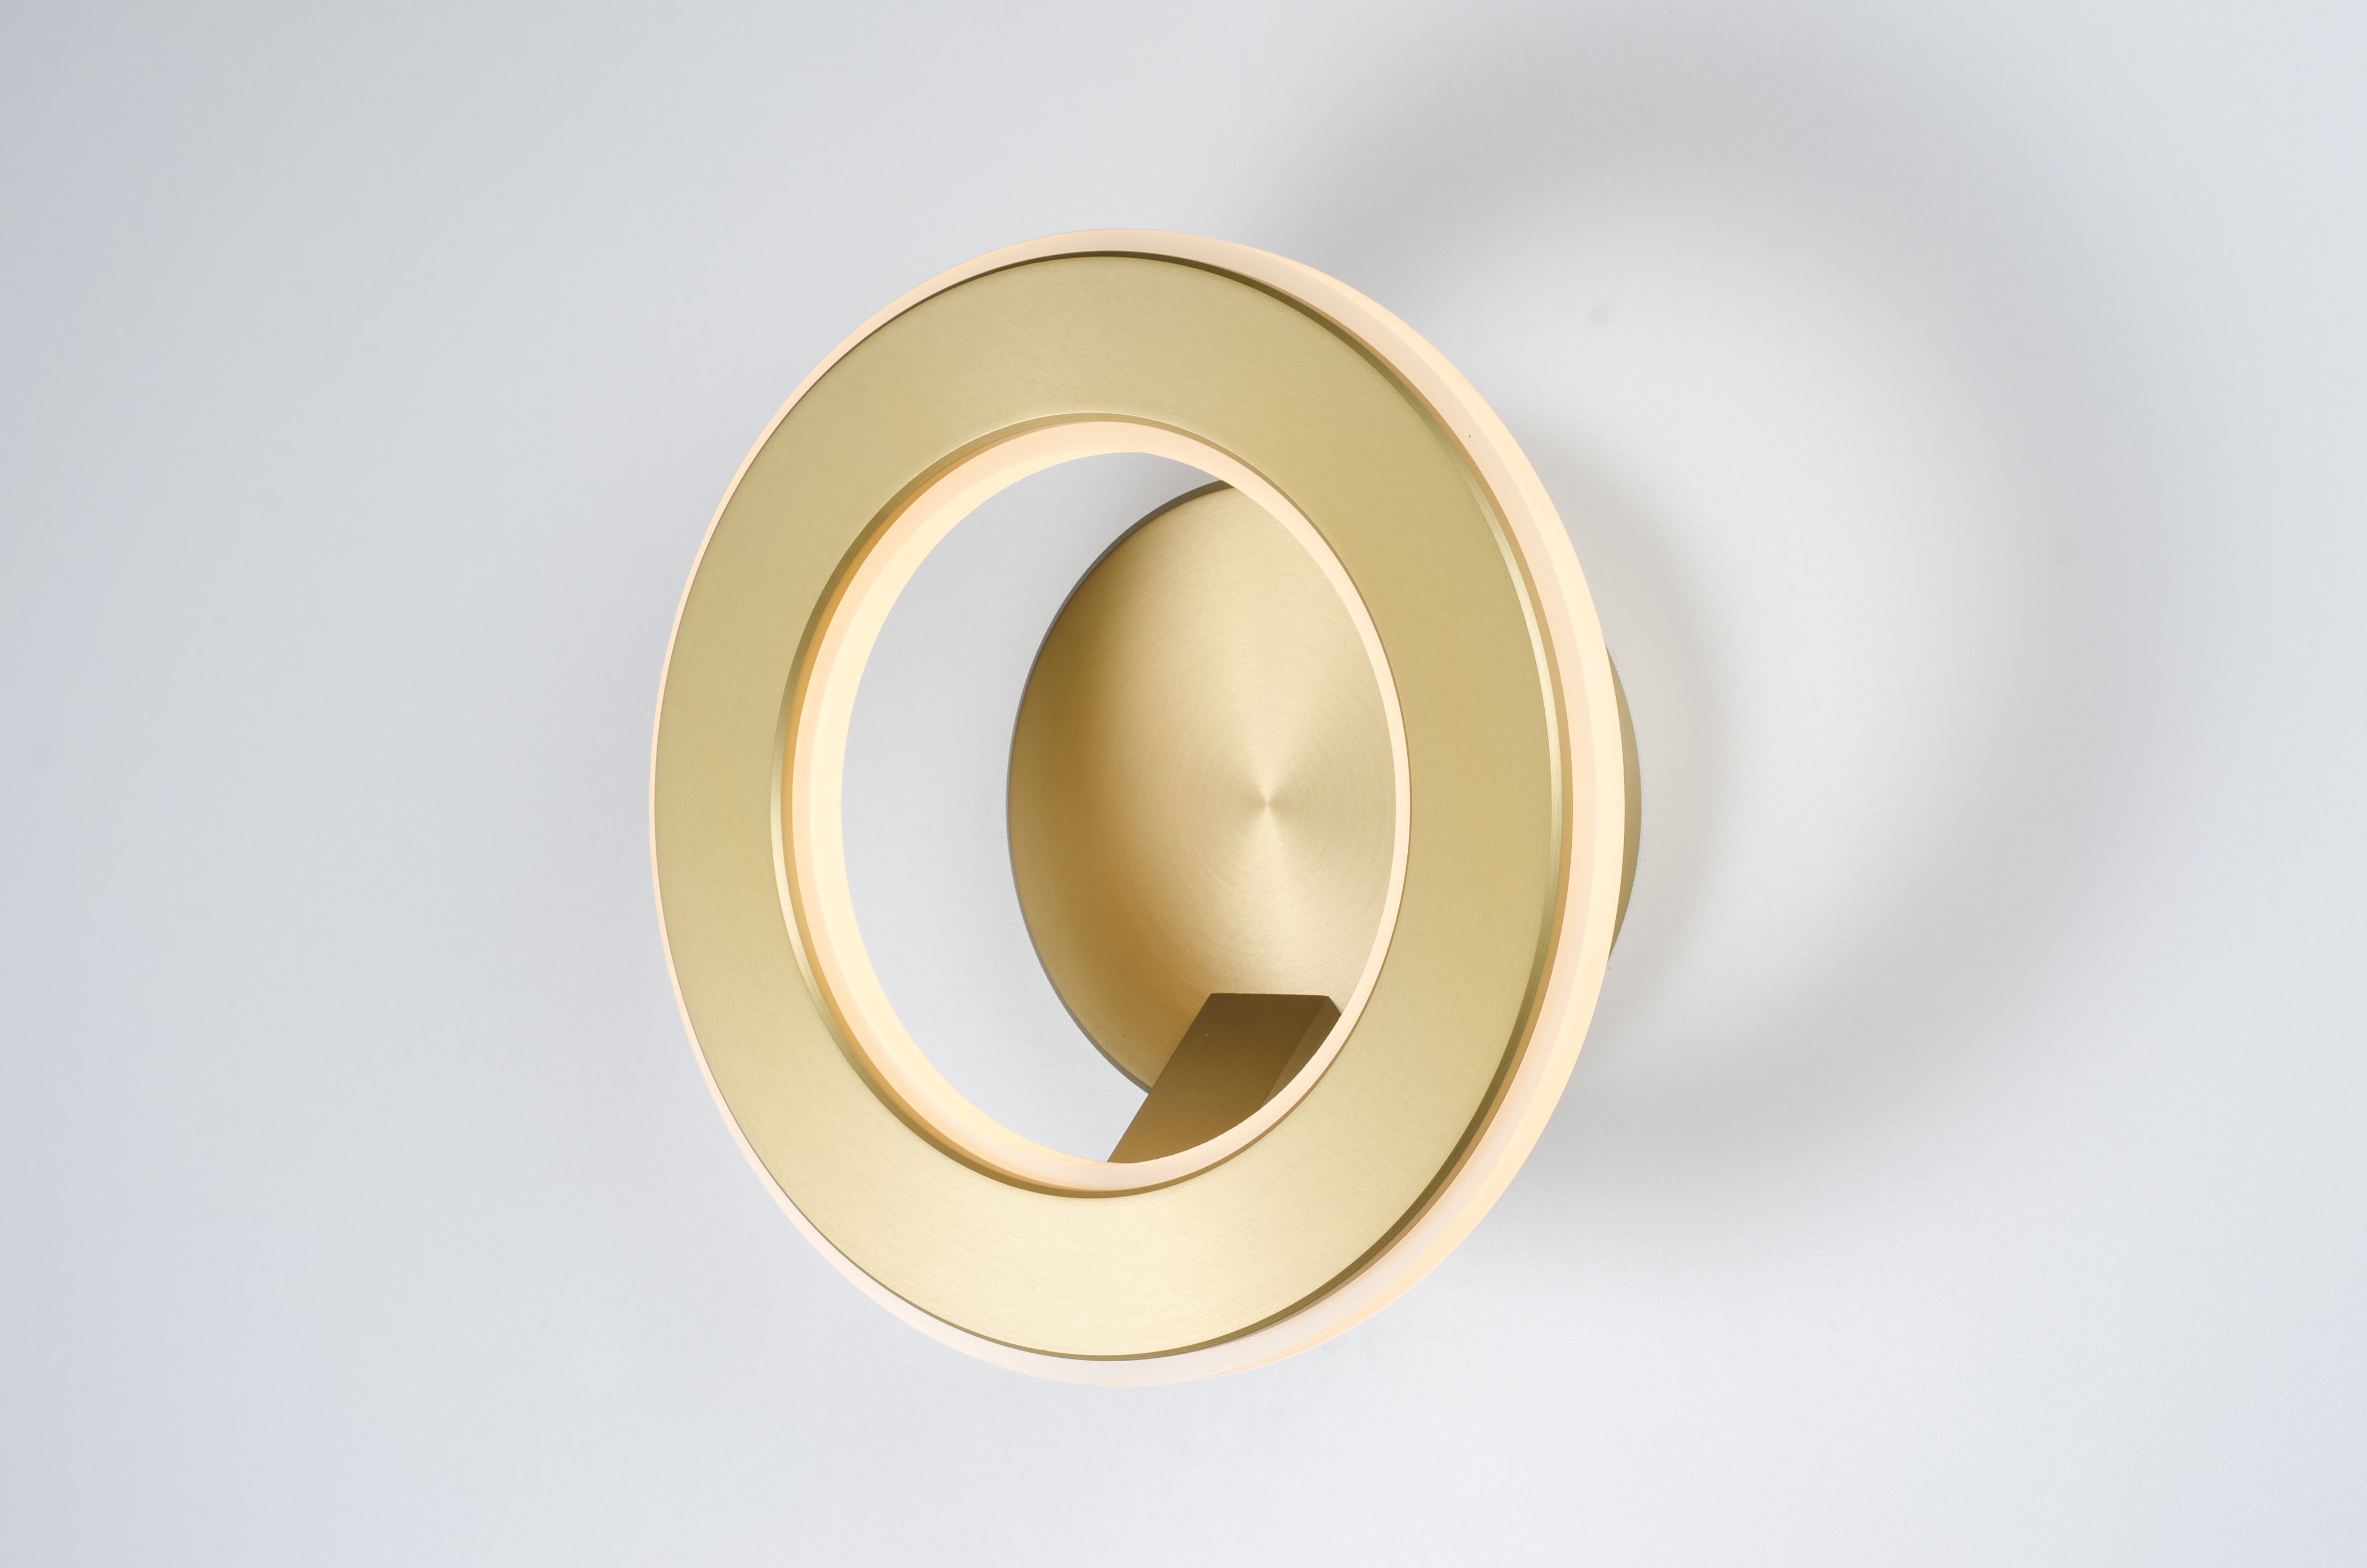 Karice Electron Wall Sconce